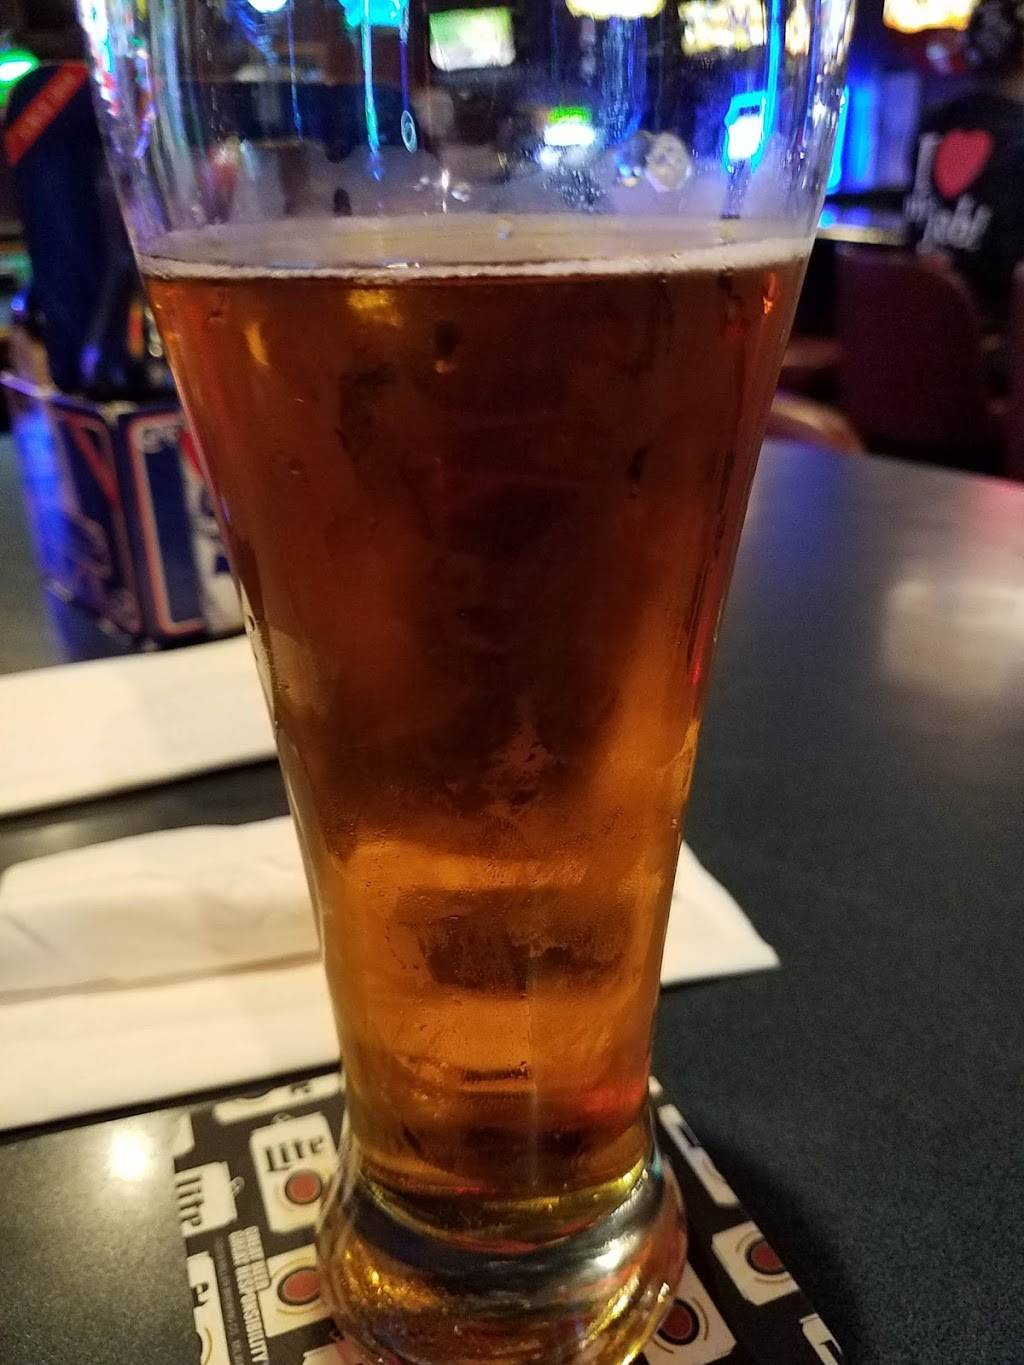 Cheers Sports Bar & Grill | restaurant | 4314 Milan Rd, Sandusky, OH 44870, USA | 4196249990 OR +1 419-624-9990